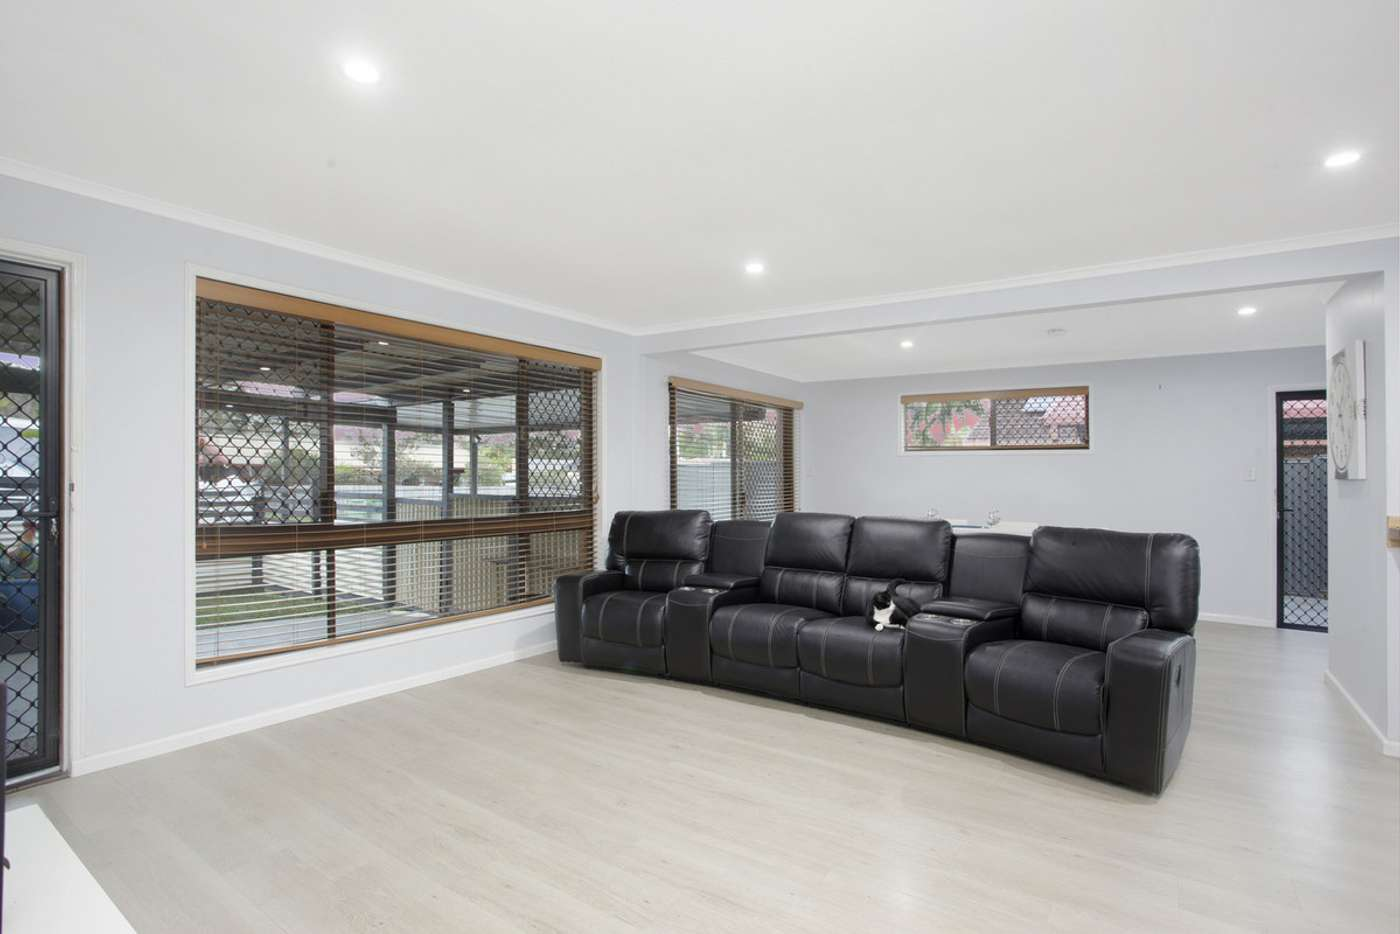 Sixth view of Homely house listing, 5 Dugandan Street, Nerang QLD 4211